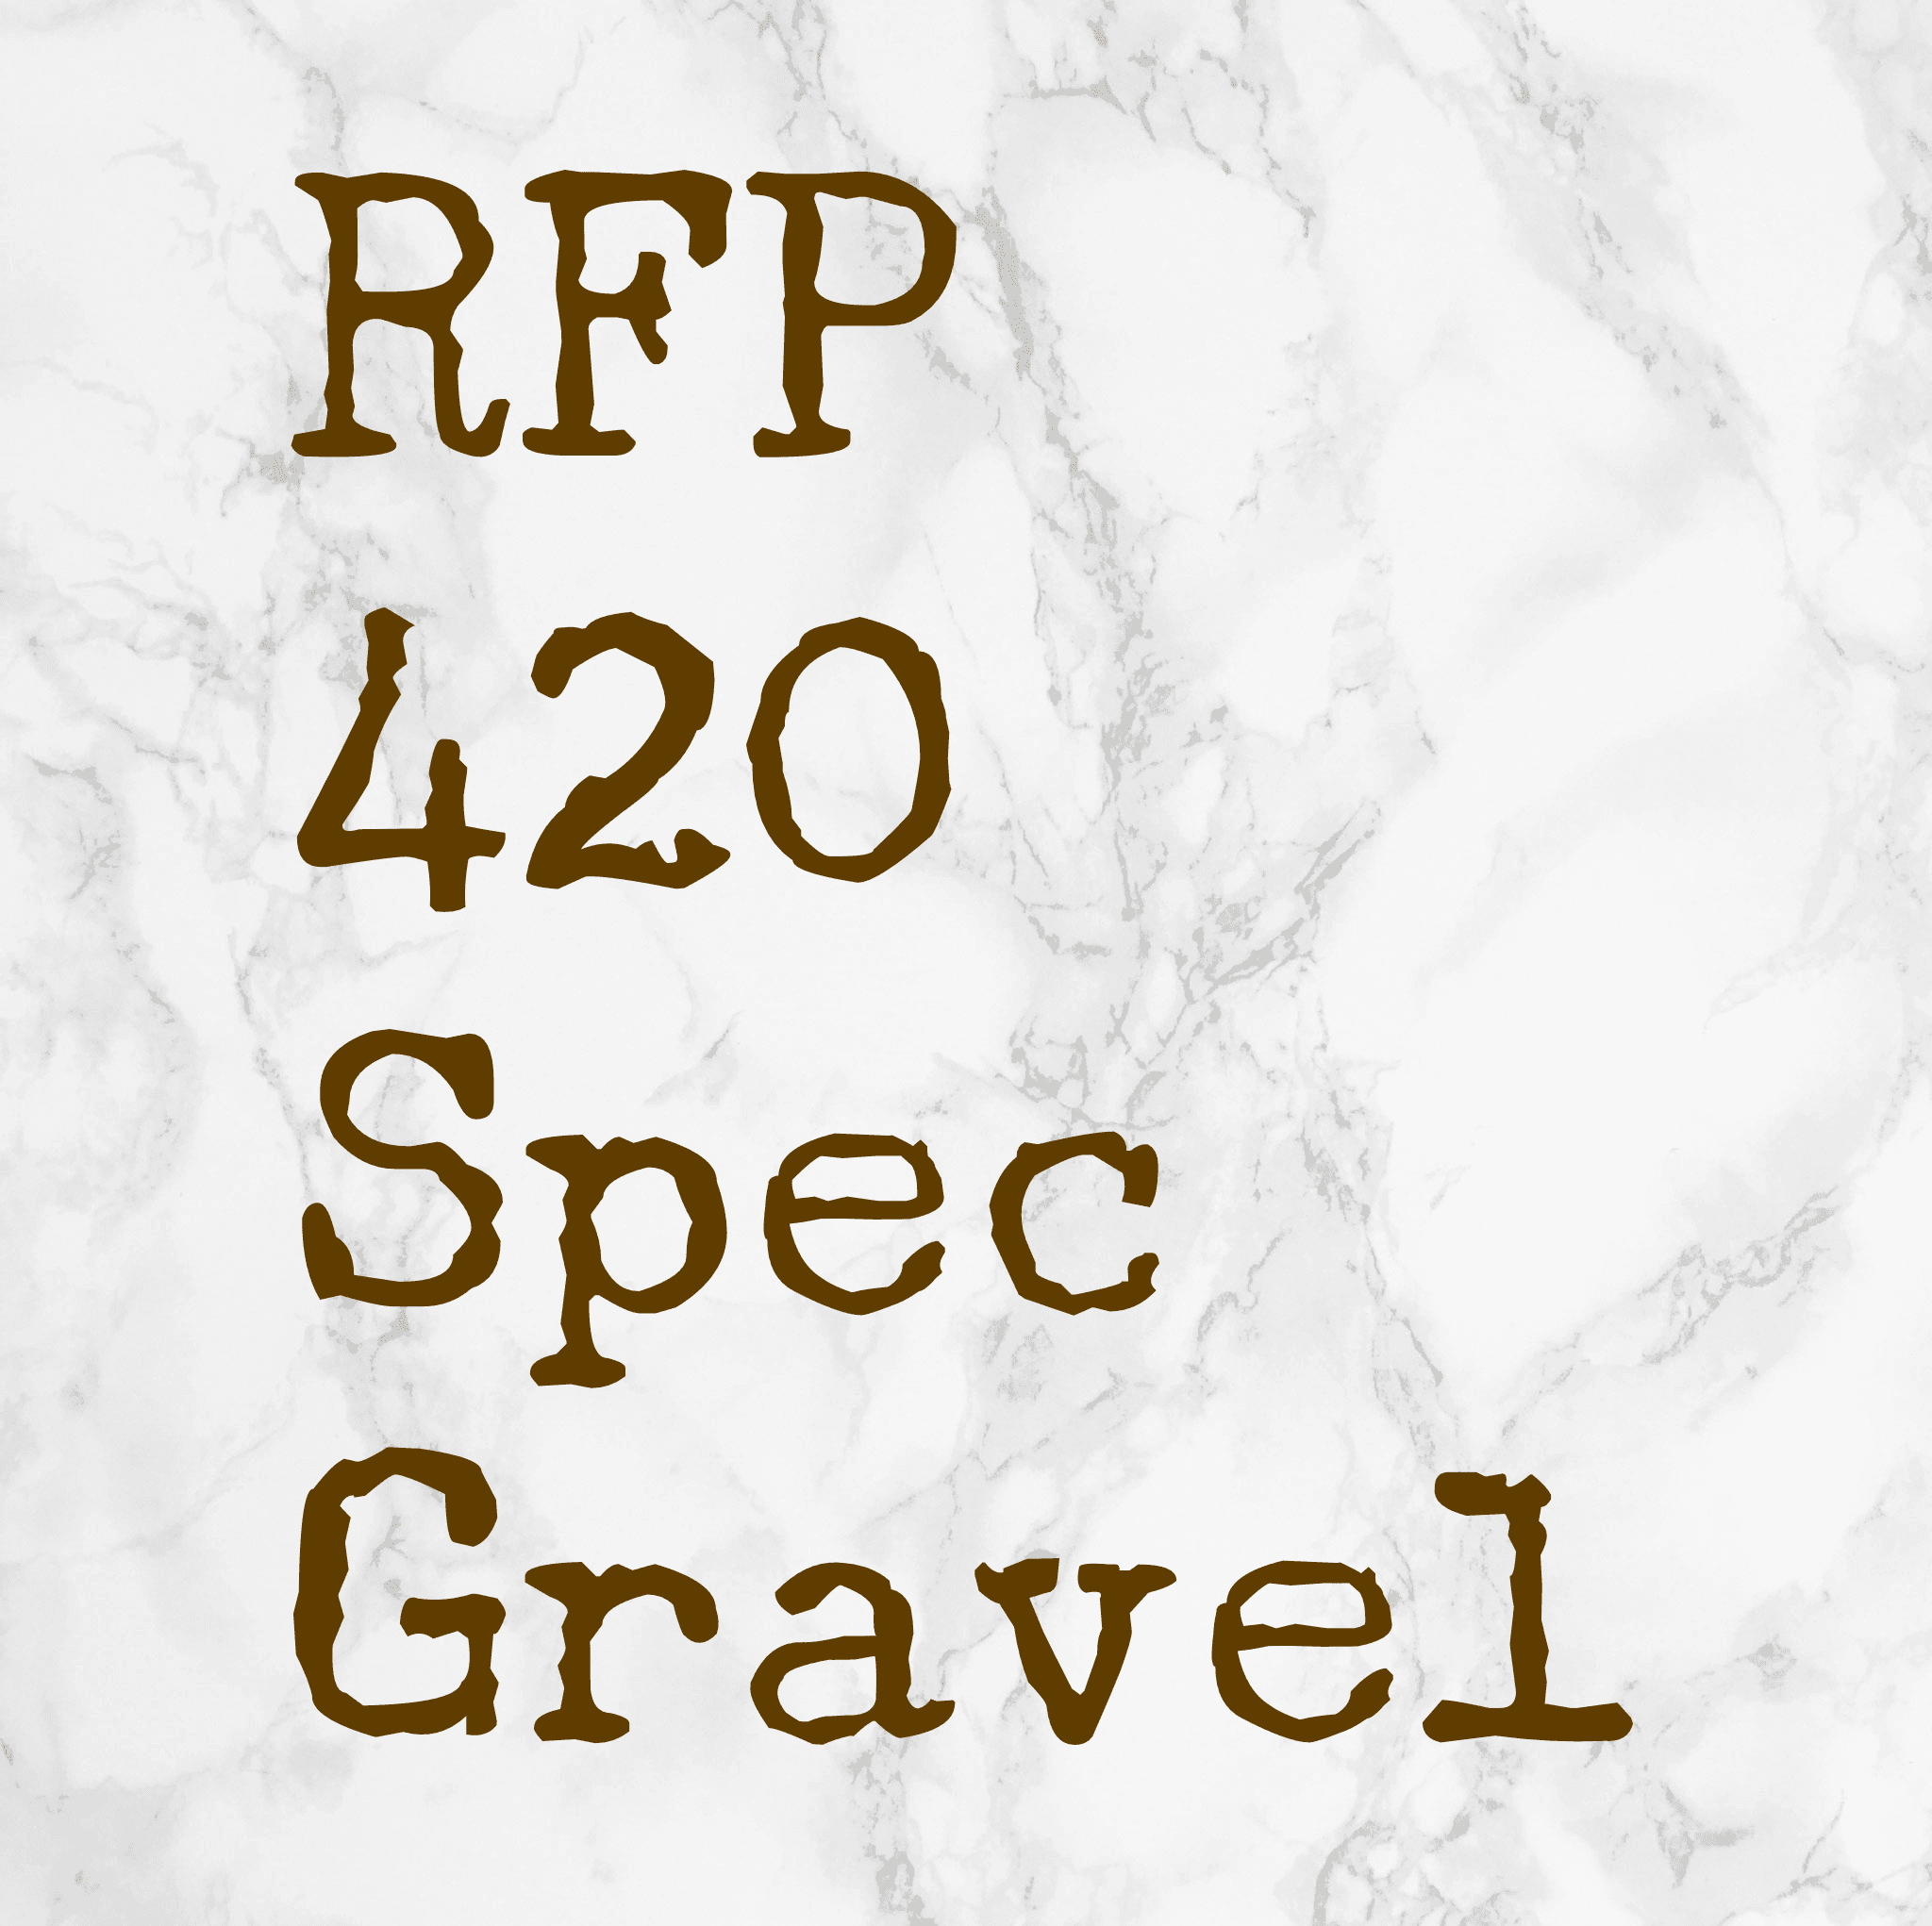 rfp 420 spec gravel